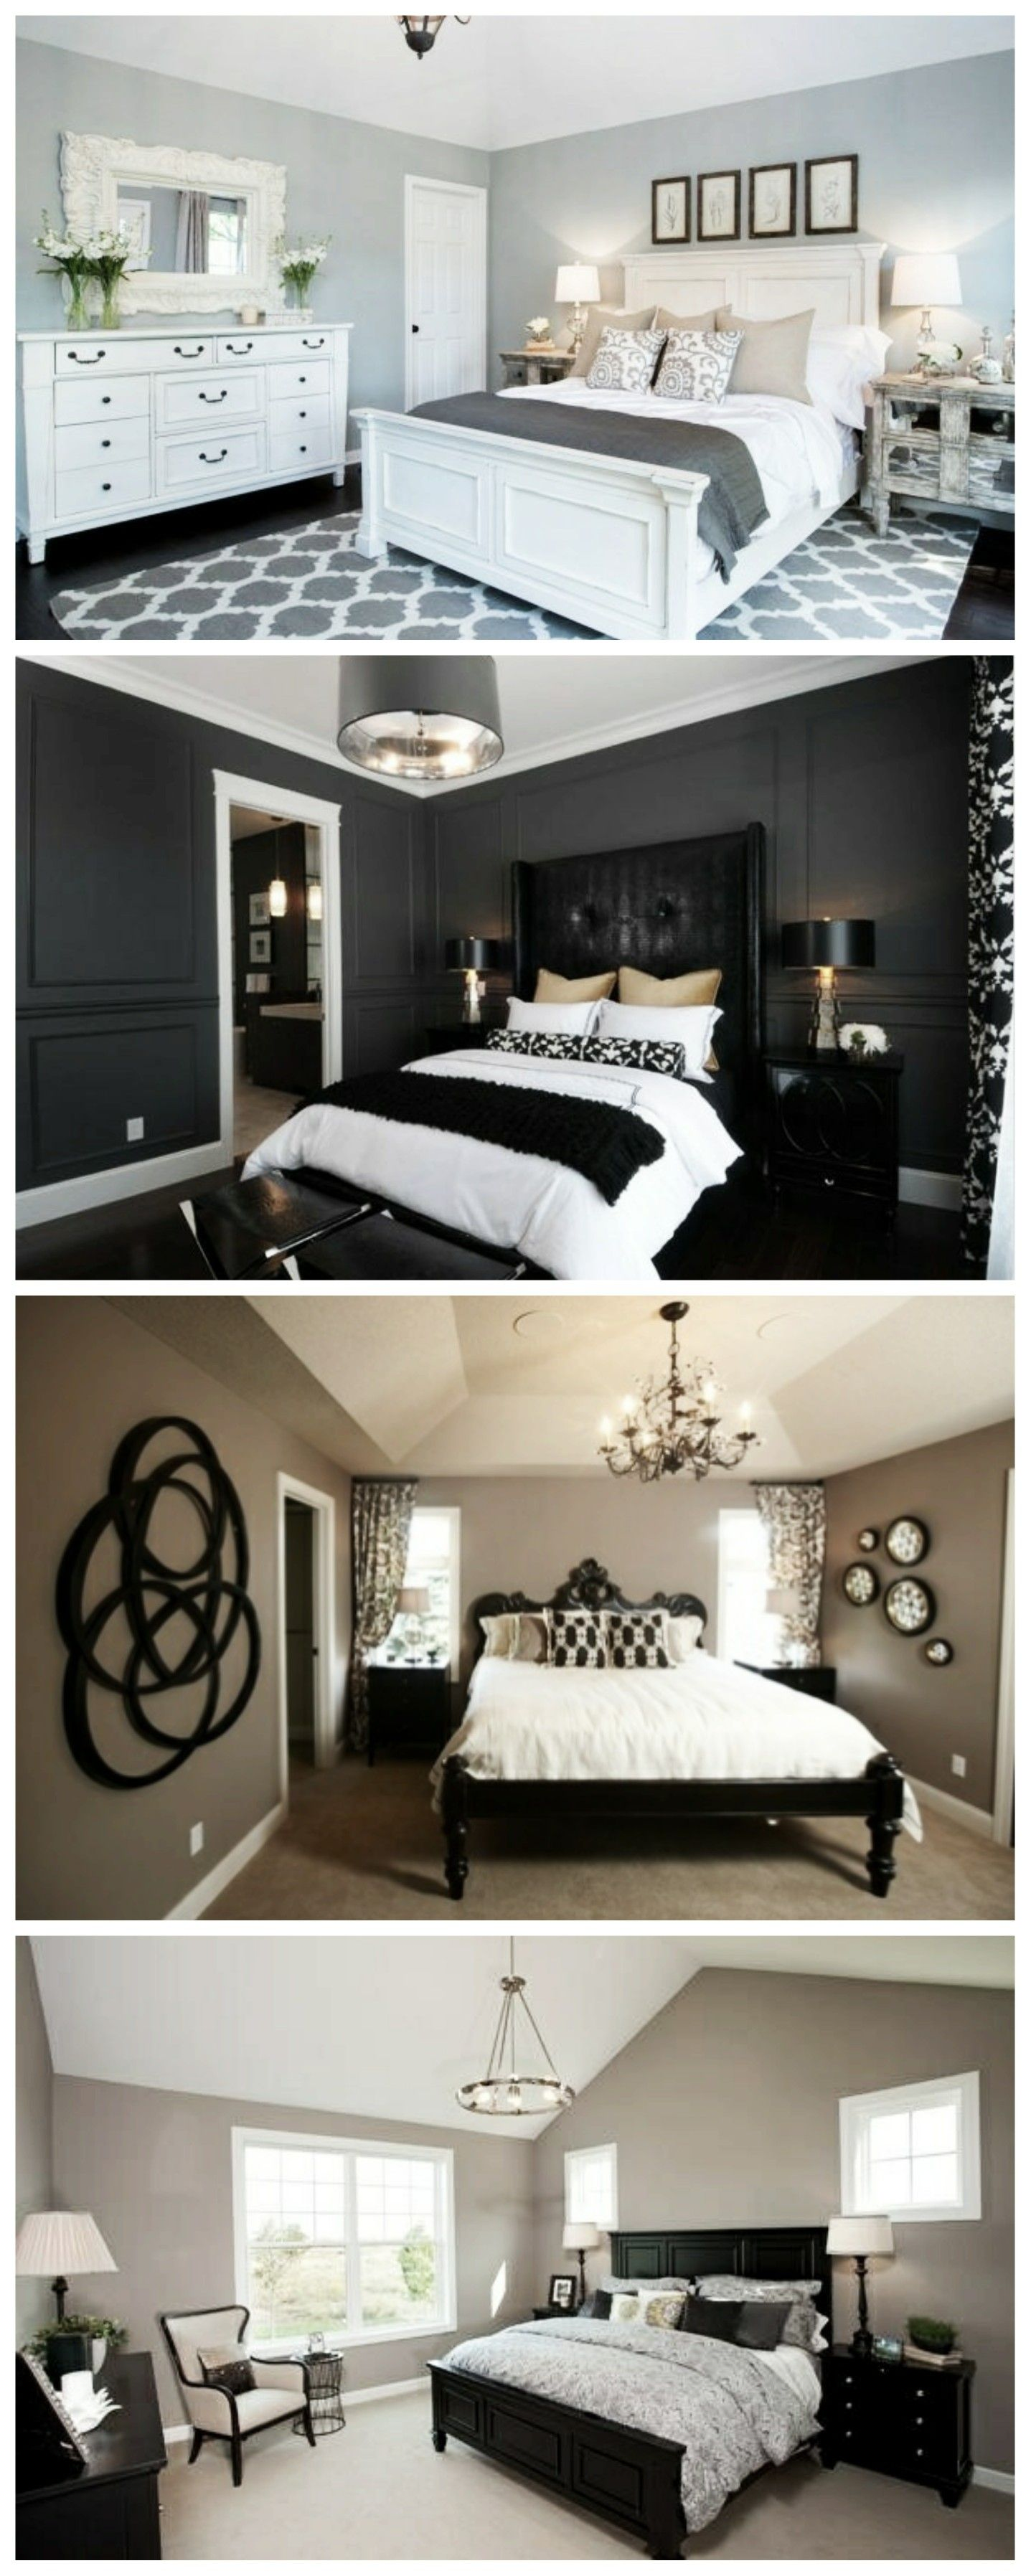 27 Bedroom Decor Ideas For Couples Singles And Teenagers